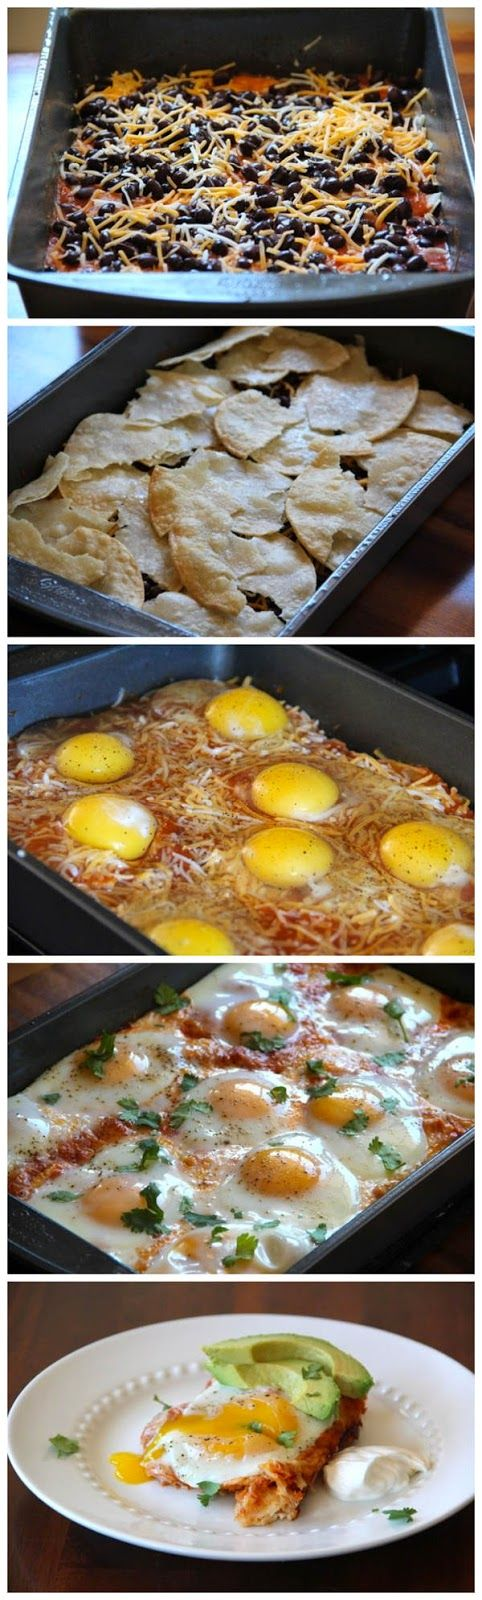 Huevos Rancheros Casserole - maybe for a special breakfast when kids stay over. : cookingwithmichele